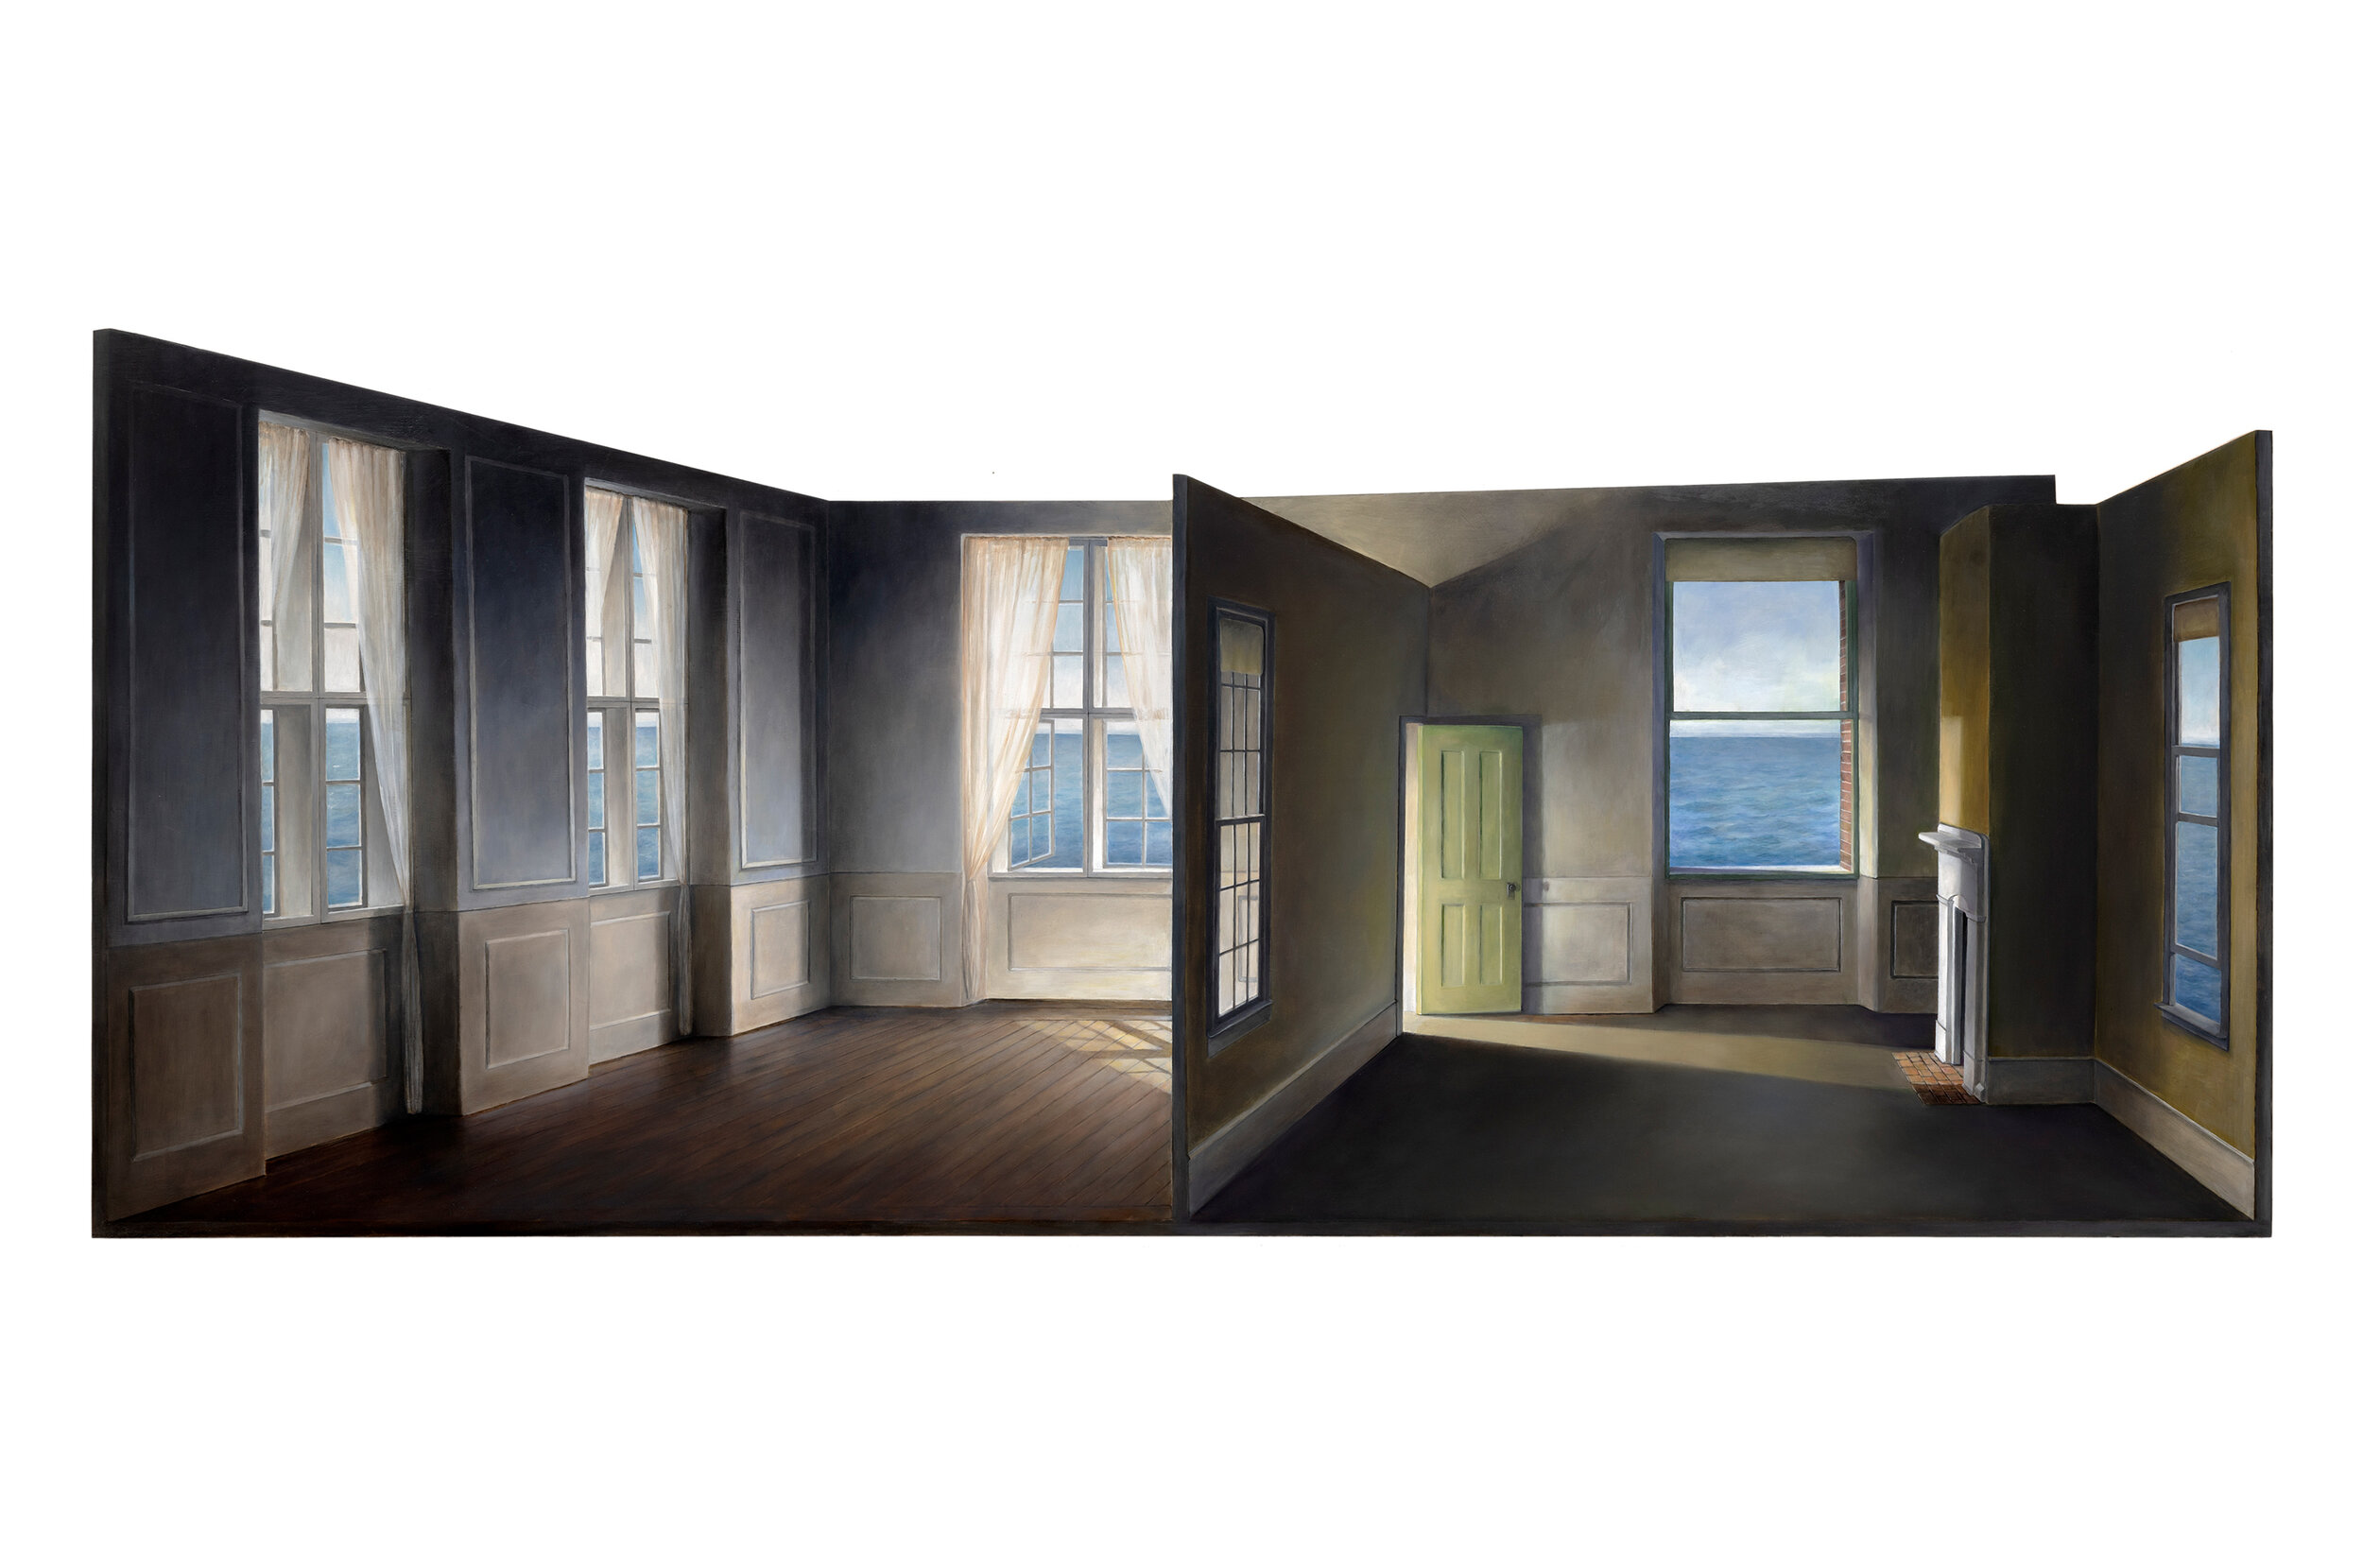 Rooms by the Sea (for Hopper and Hammershøi)   2019  Oil on shaped panel  34.5 x 82 inches